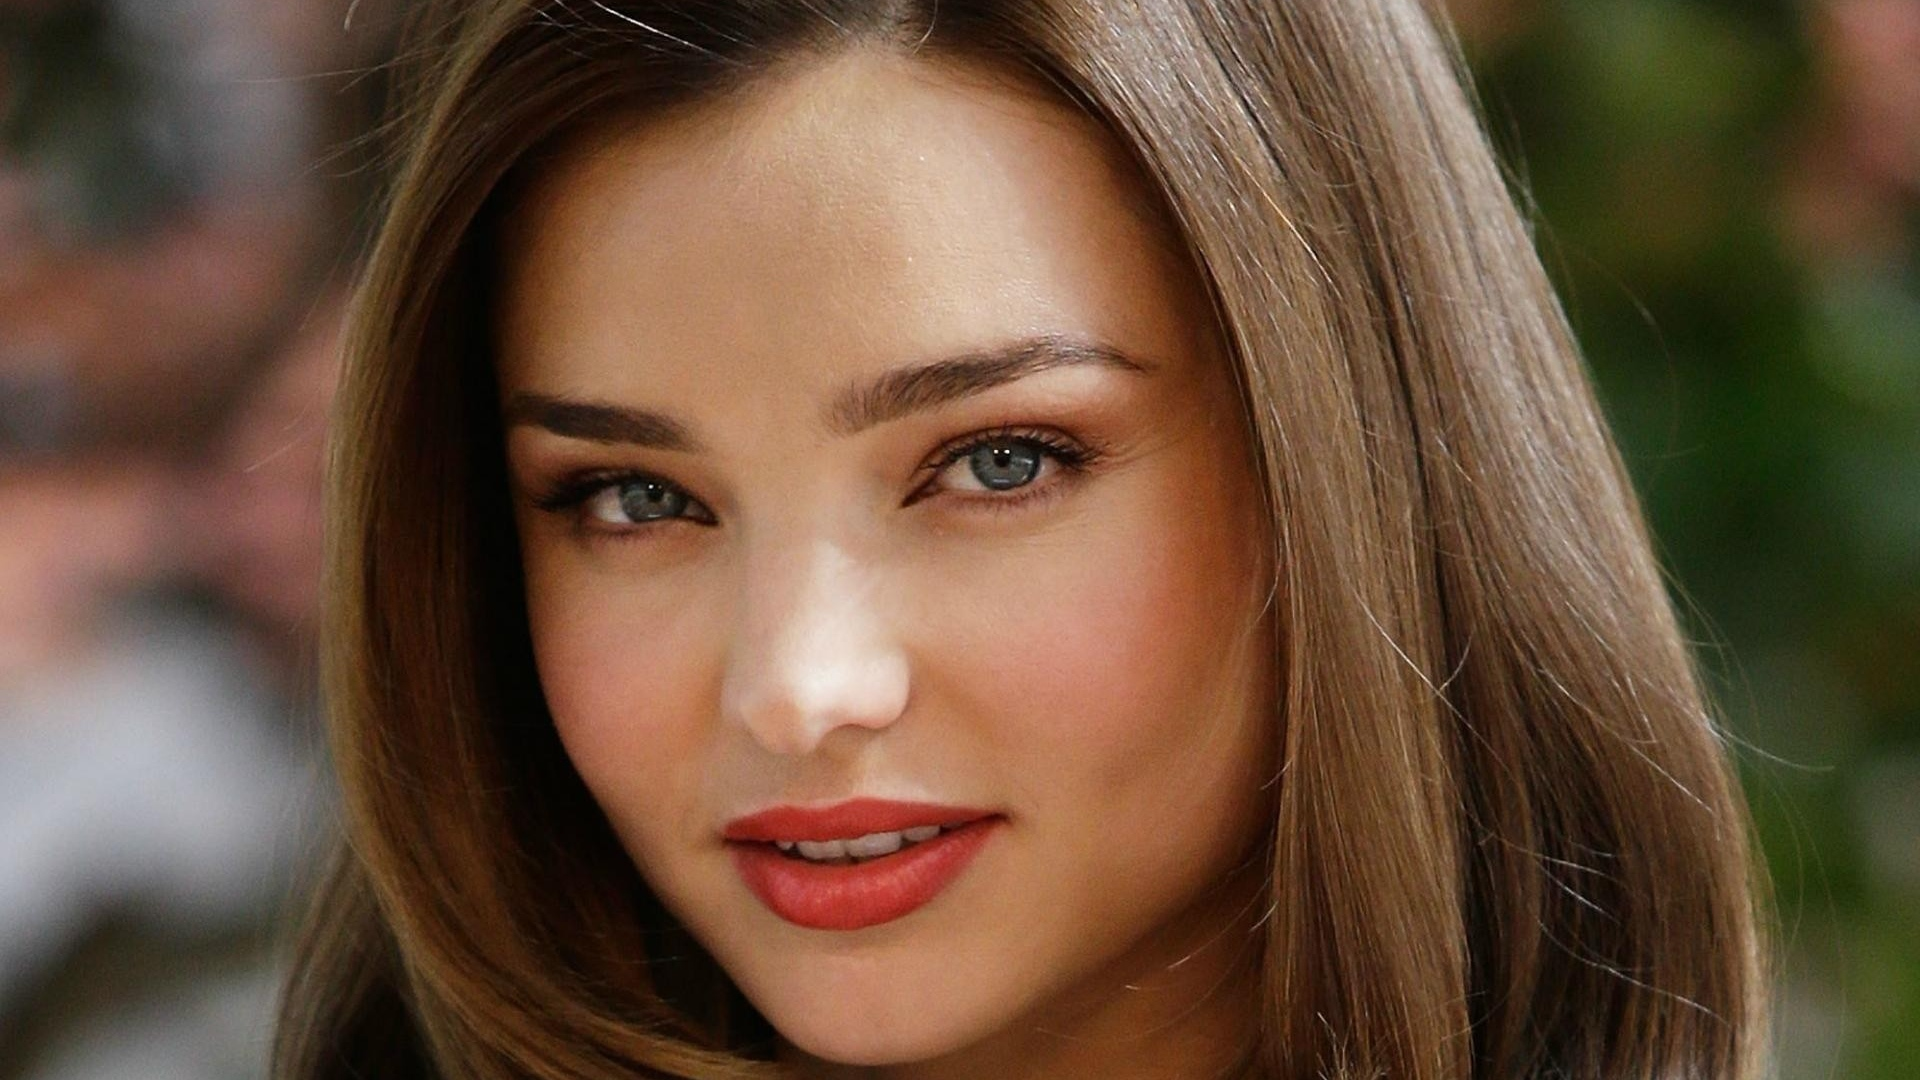 Miranda Kerr Wallpapers High Resolution and Quality Download